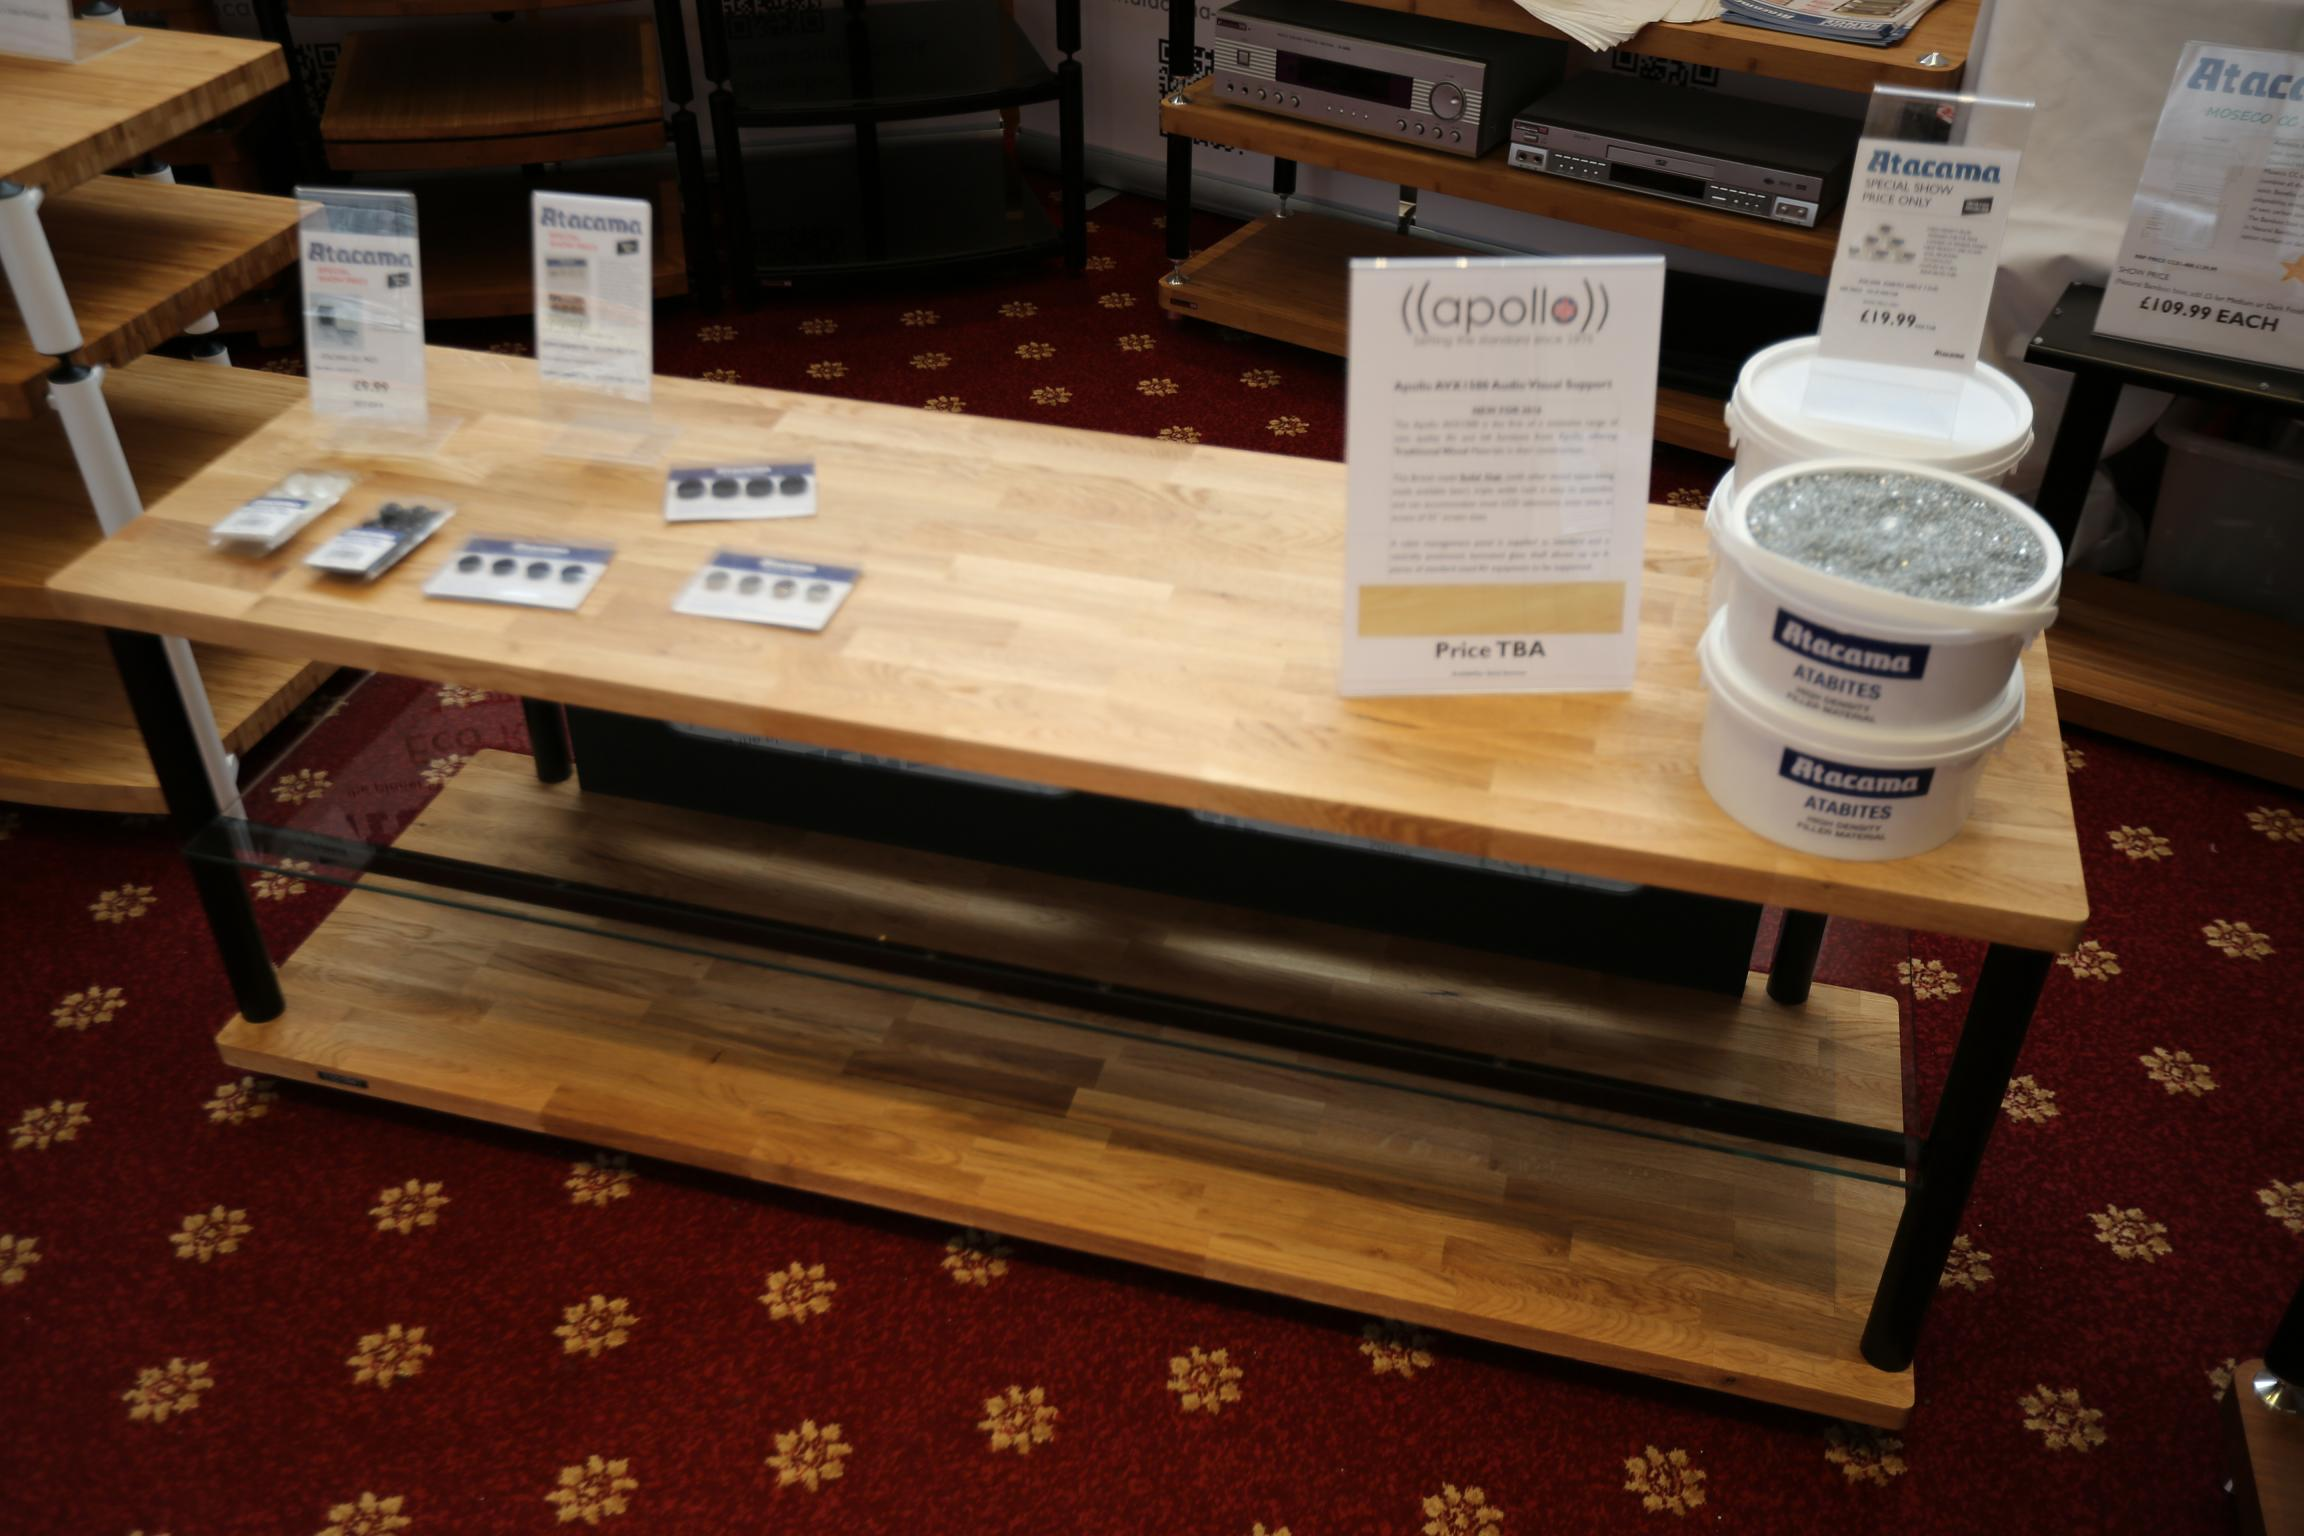 Atacama Hifi Rack Review Bristol Hifi Show 2016 Wrap Up Audio Affair Blog